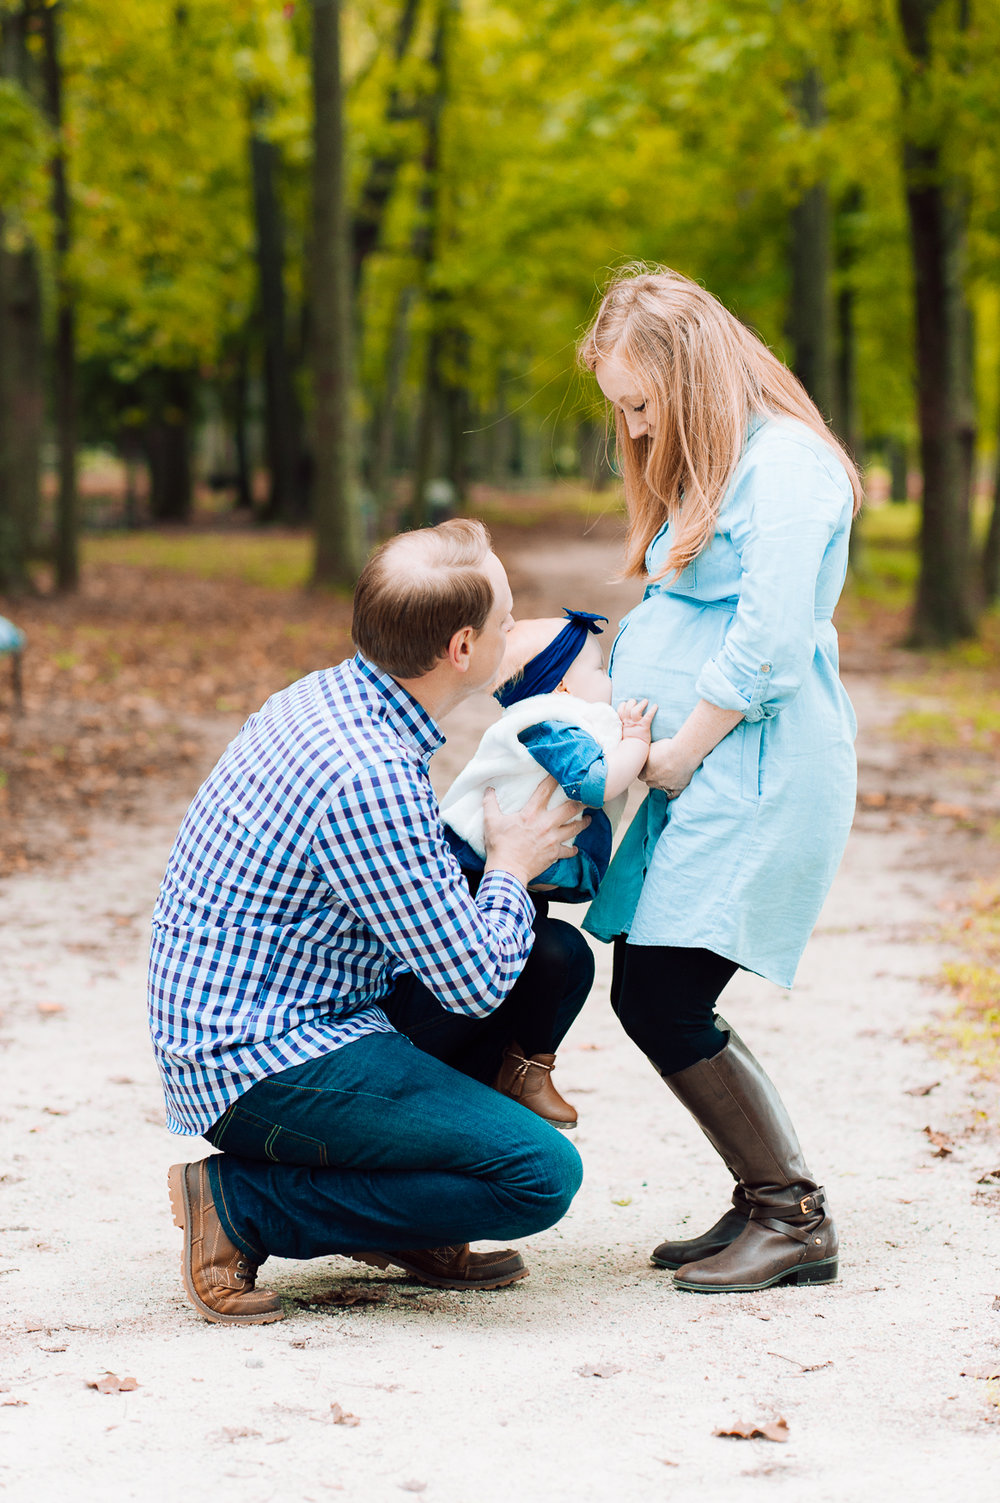 maternity_fallphotos_fredericksburgphotographer_leesylvania_youseephotography_Heather (5).jpg